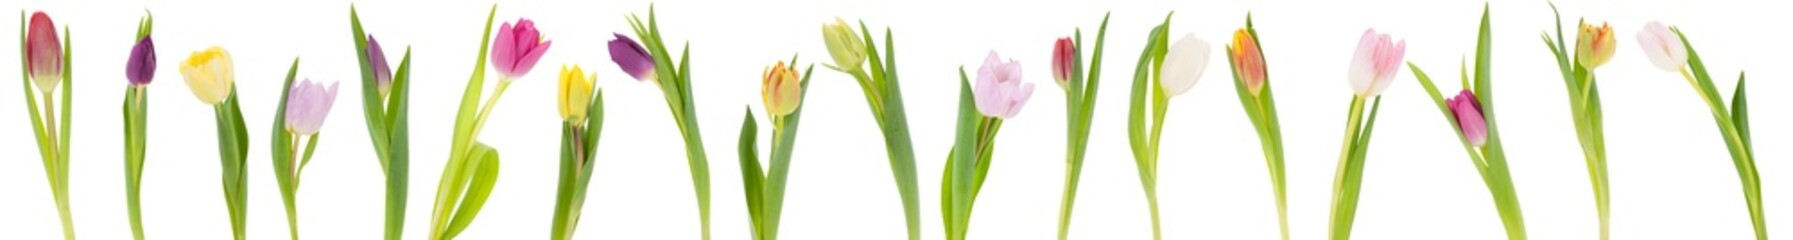 Fototapeta Banner of tulips